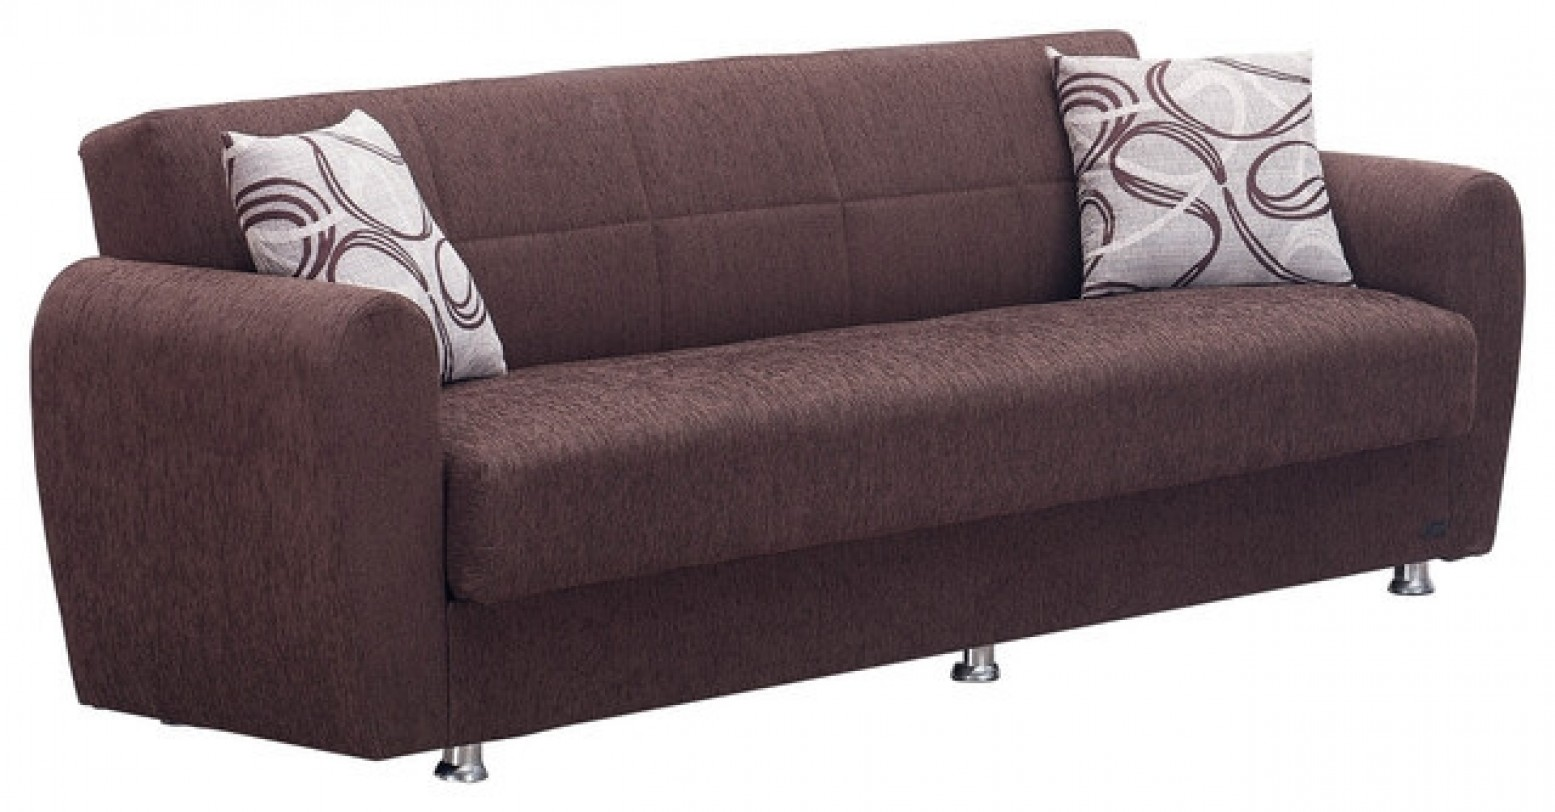 Boston Fabric Storage Sofabed Brown By Empire Furniture Sohomod Com